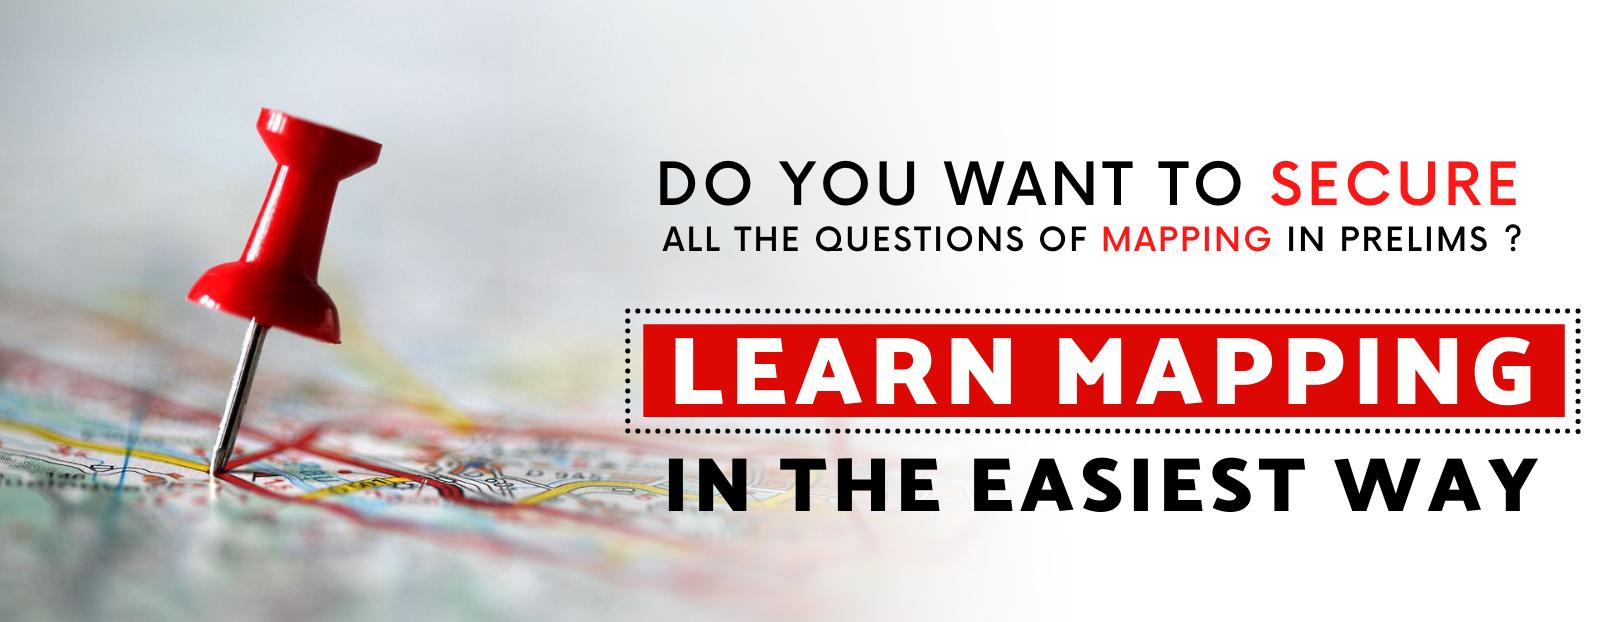 learn mapping in the asiestmay